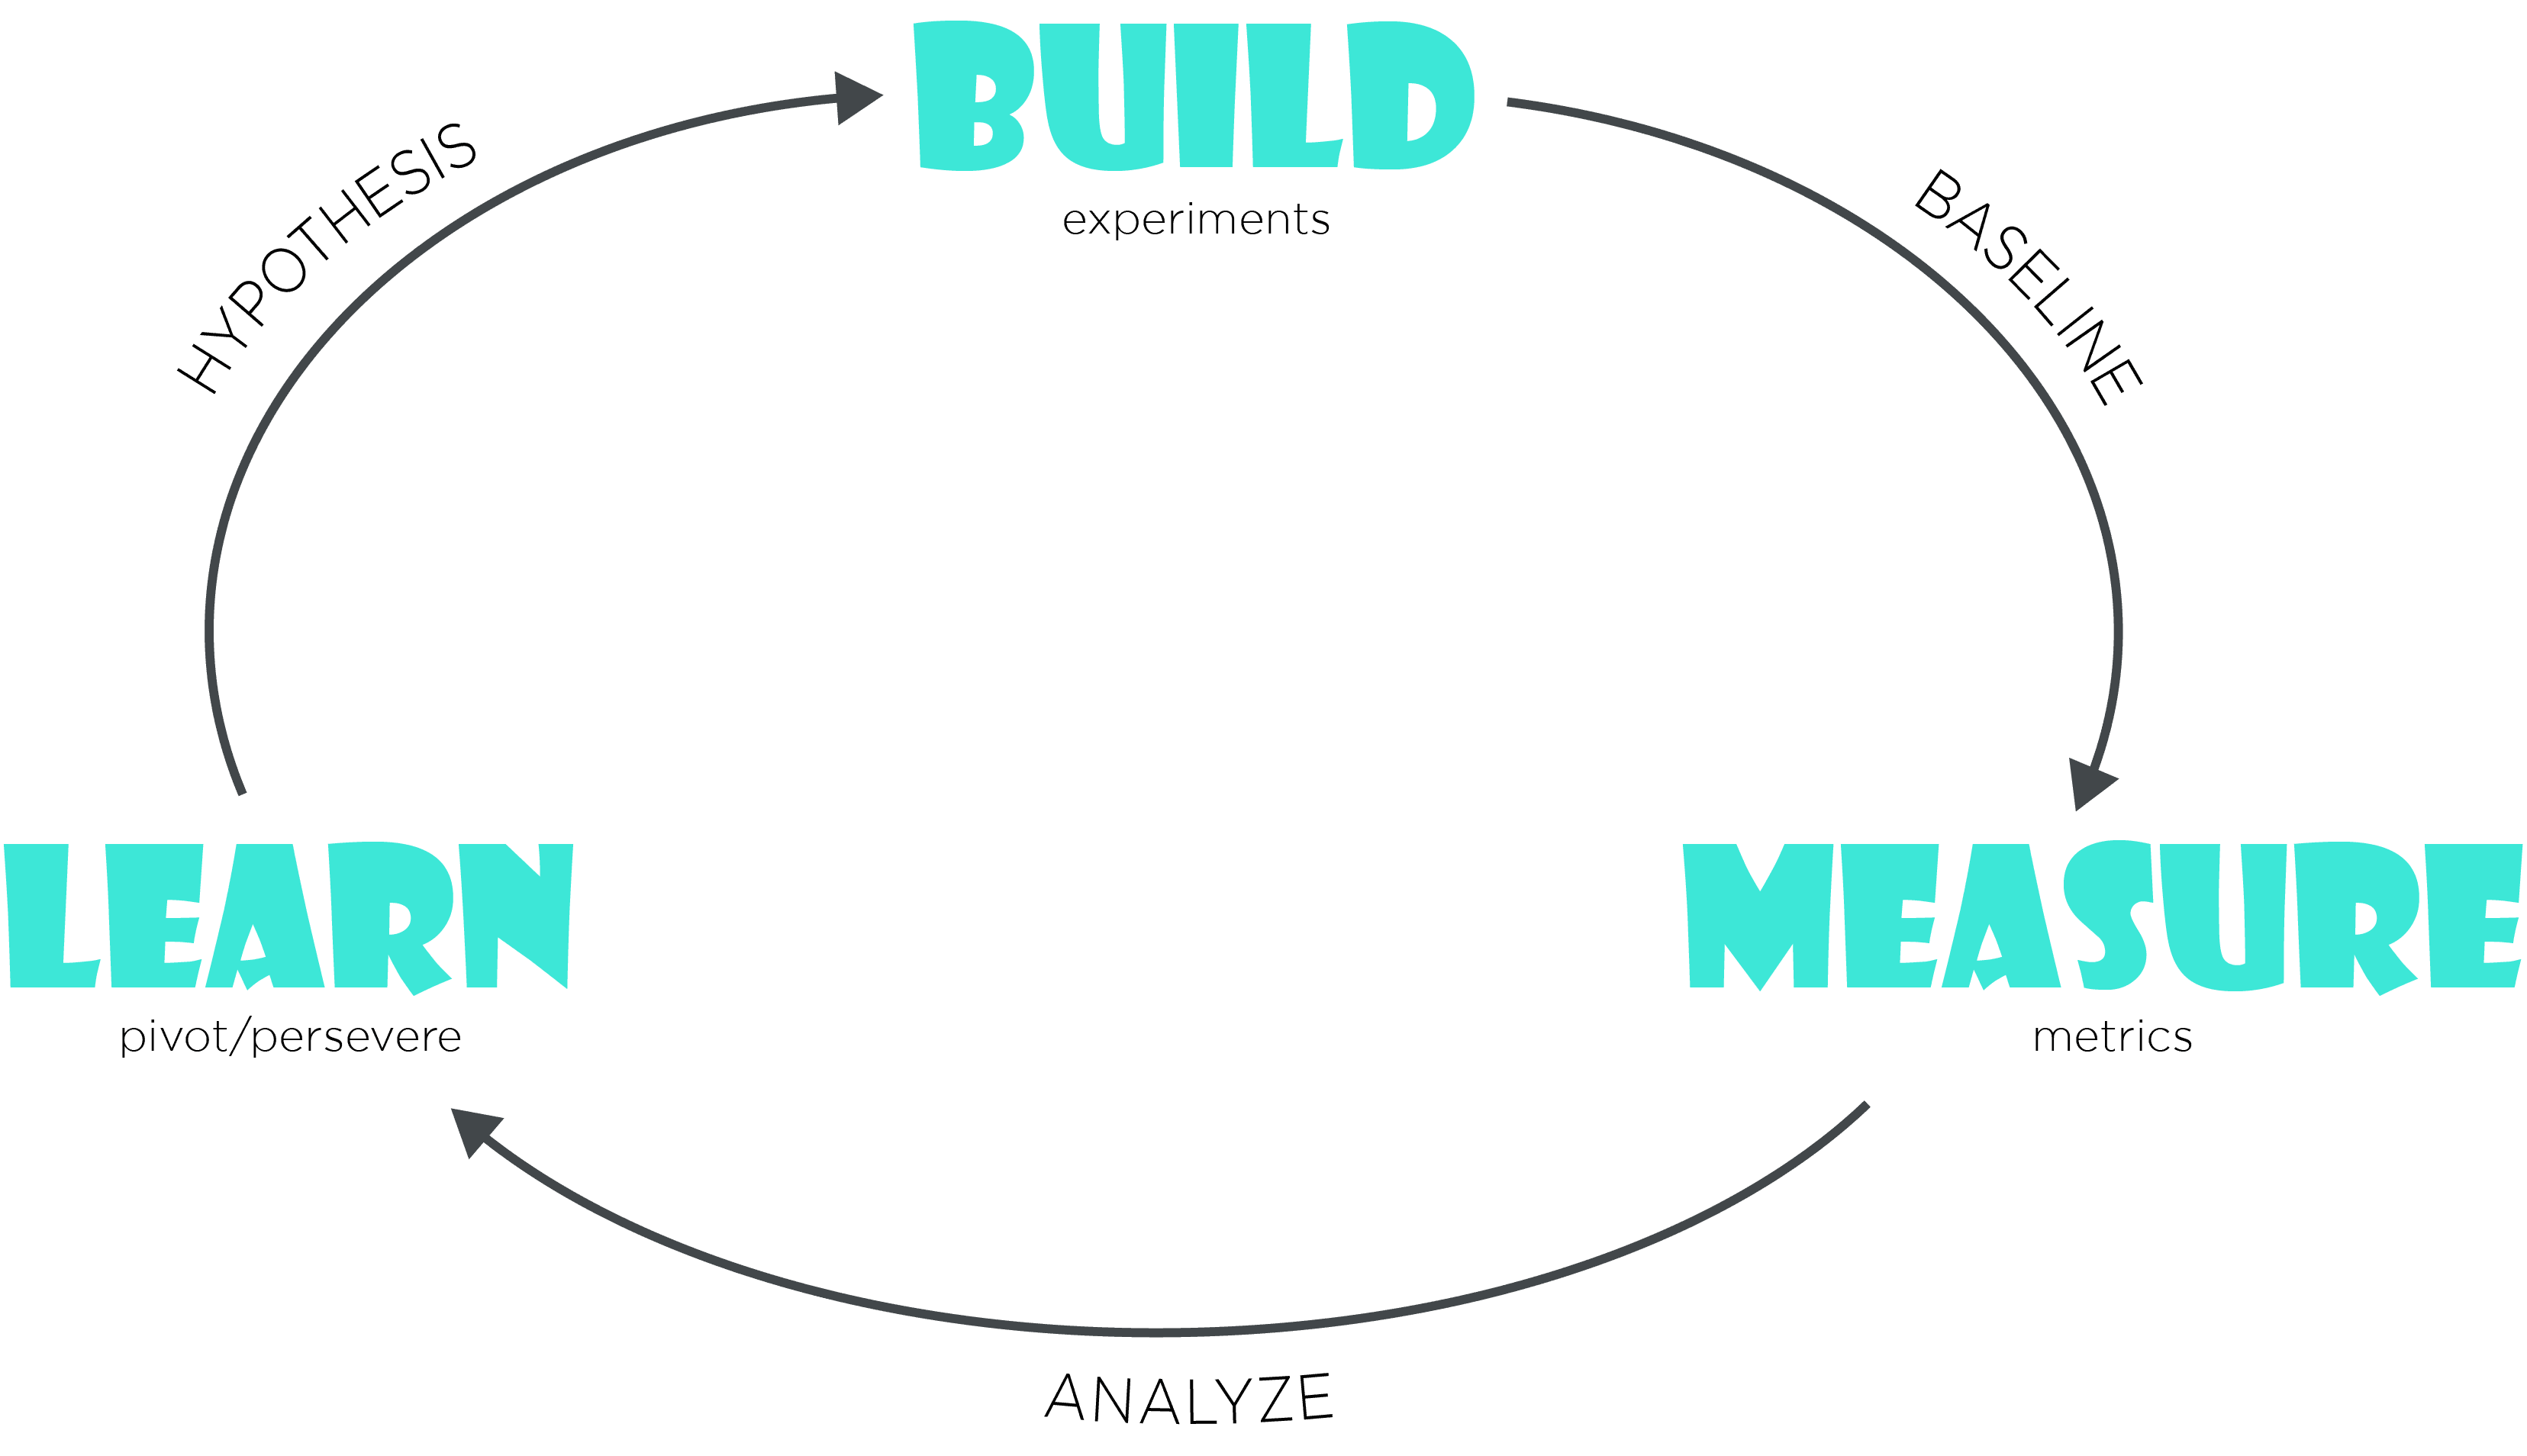 The feedback loop showing 3 phases of build, measure and learn